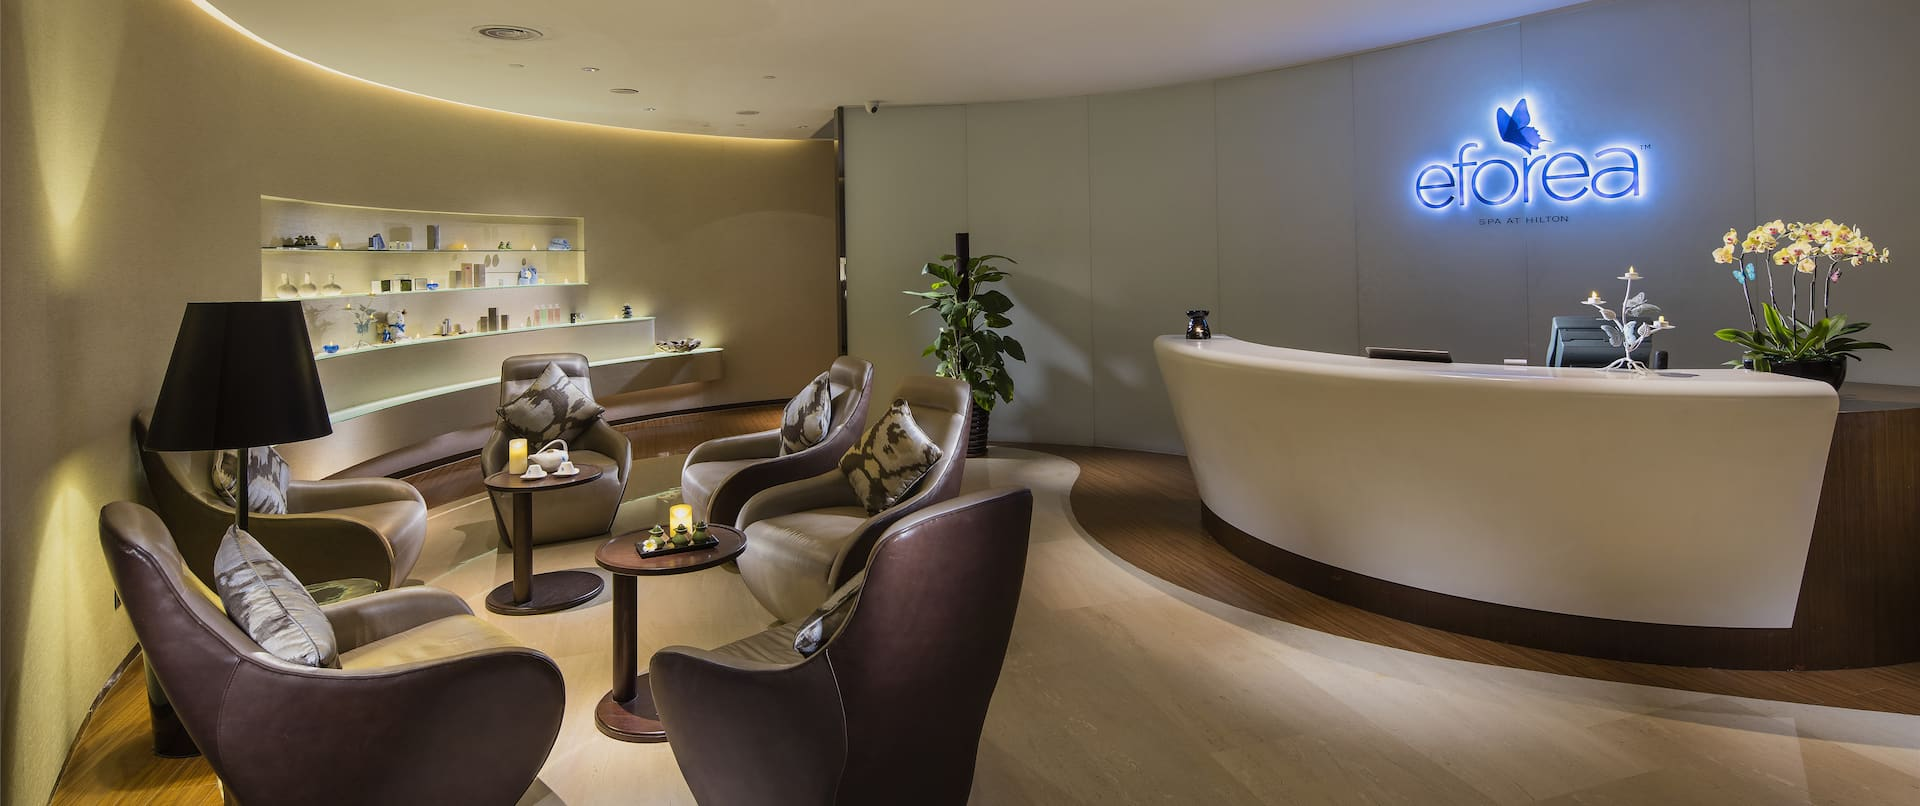 View of spacious, modern and bright SPA decorated in neutral tones